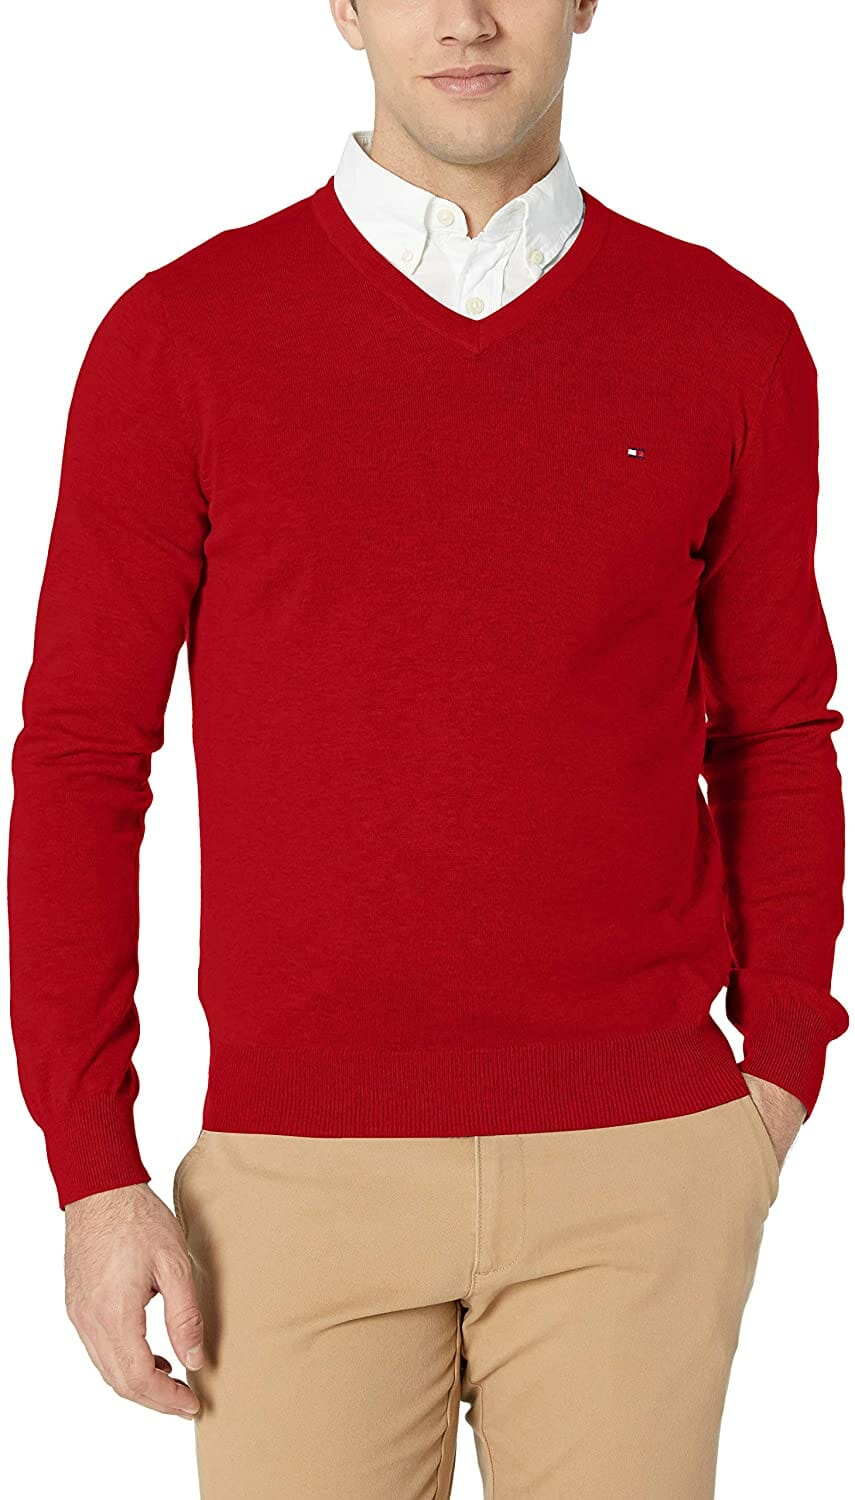 Tommy Hilfinger Jersey Cuello V Red Hombre Jersey Cuello V Red Hombre